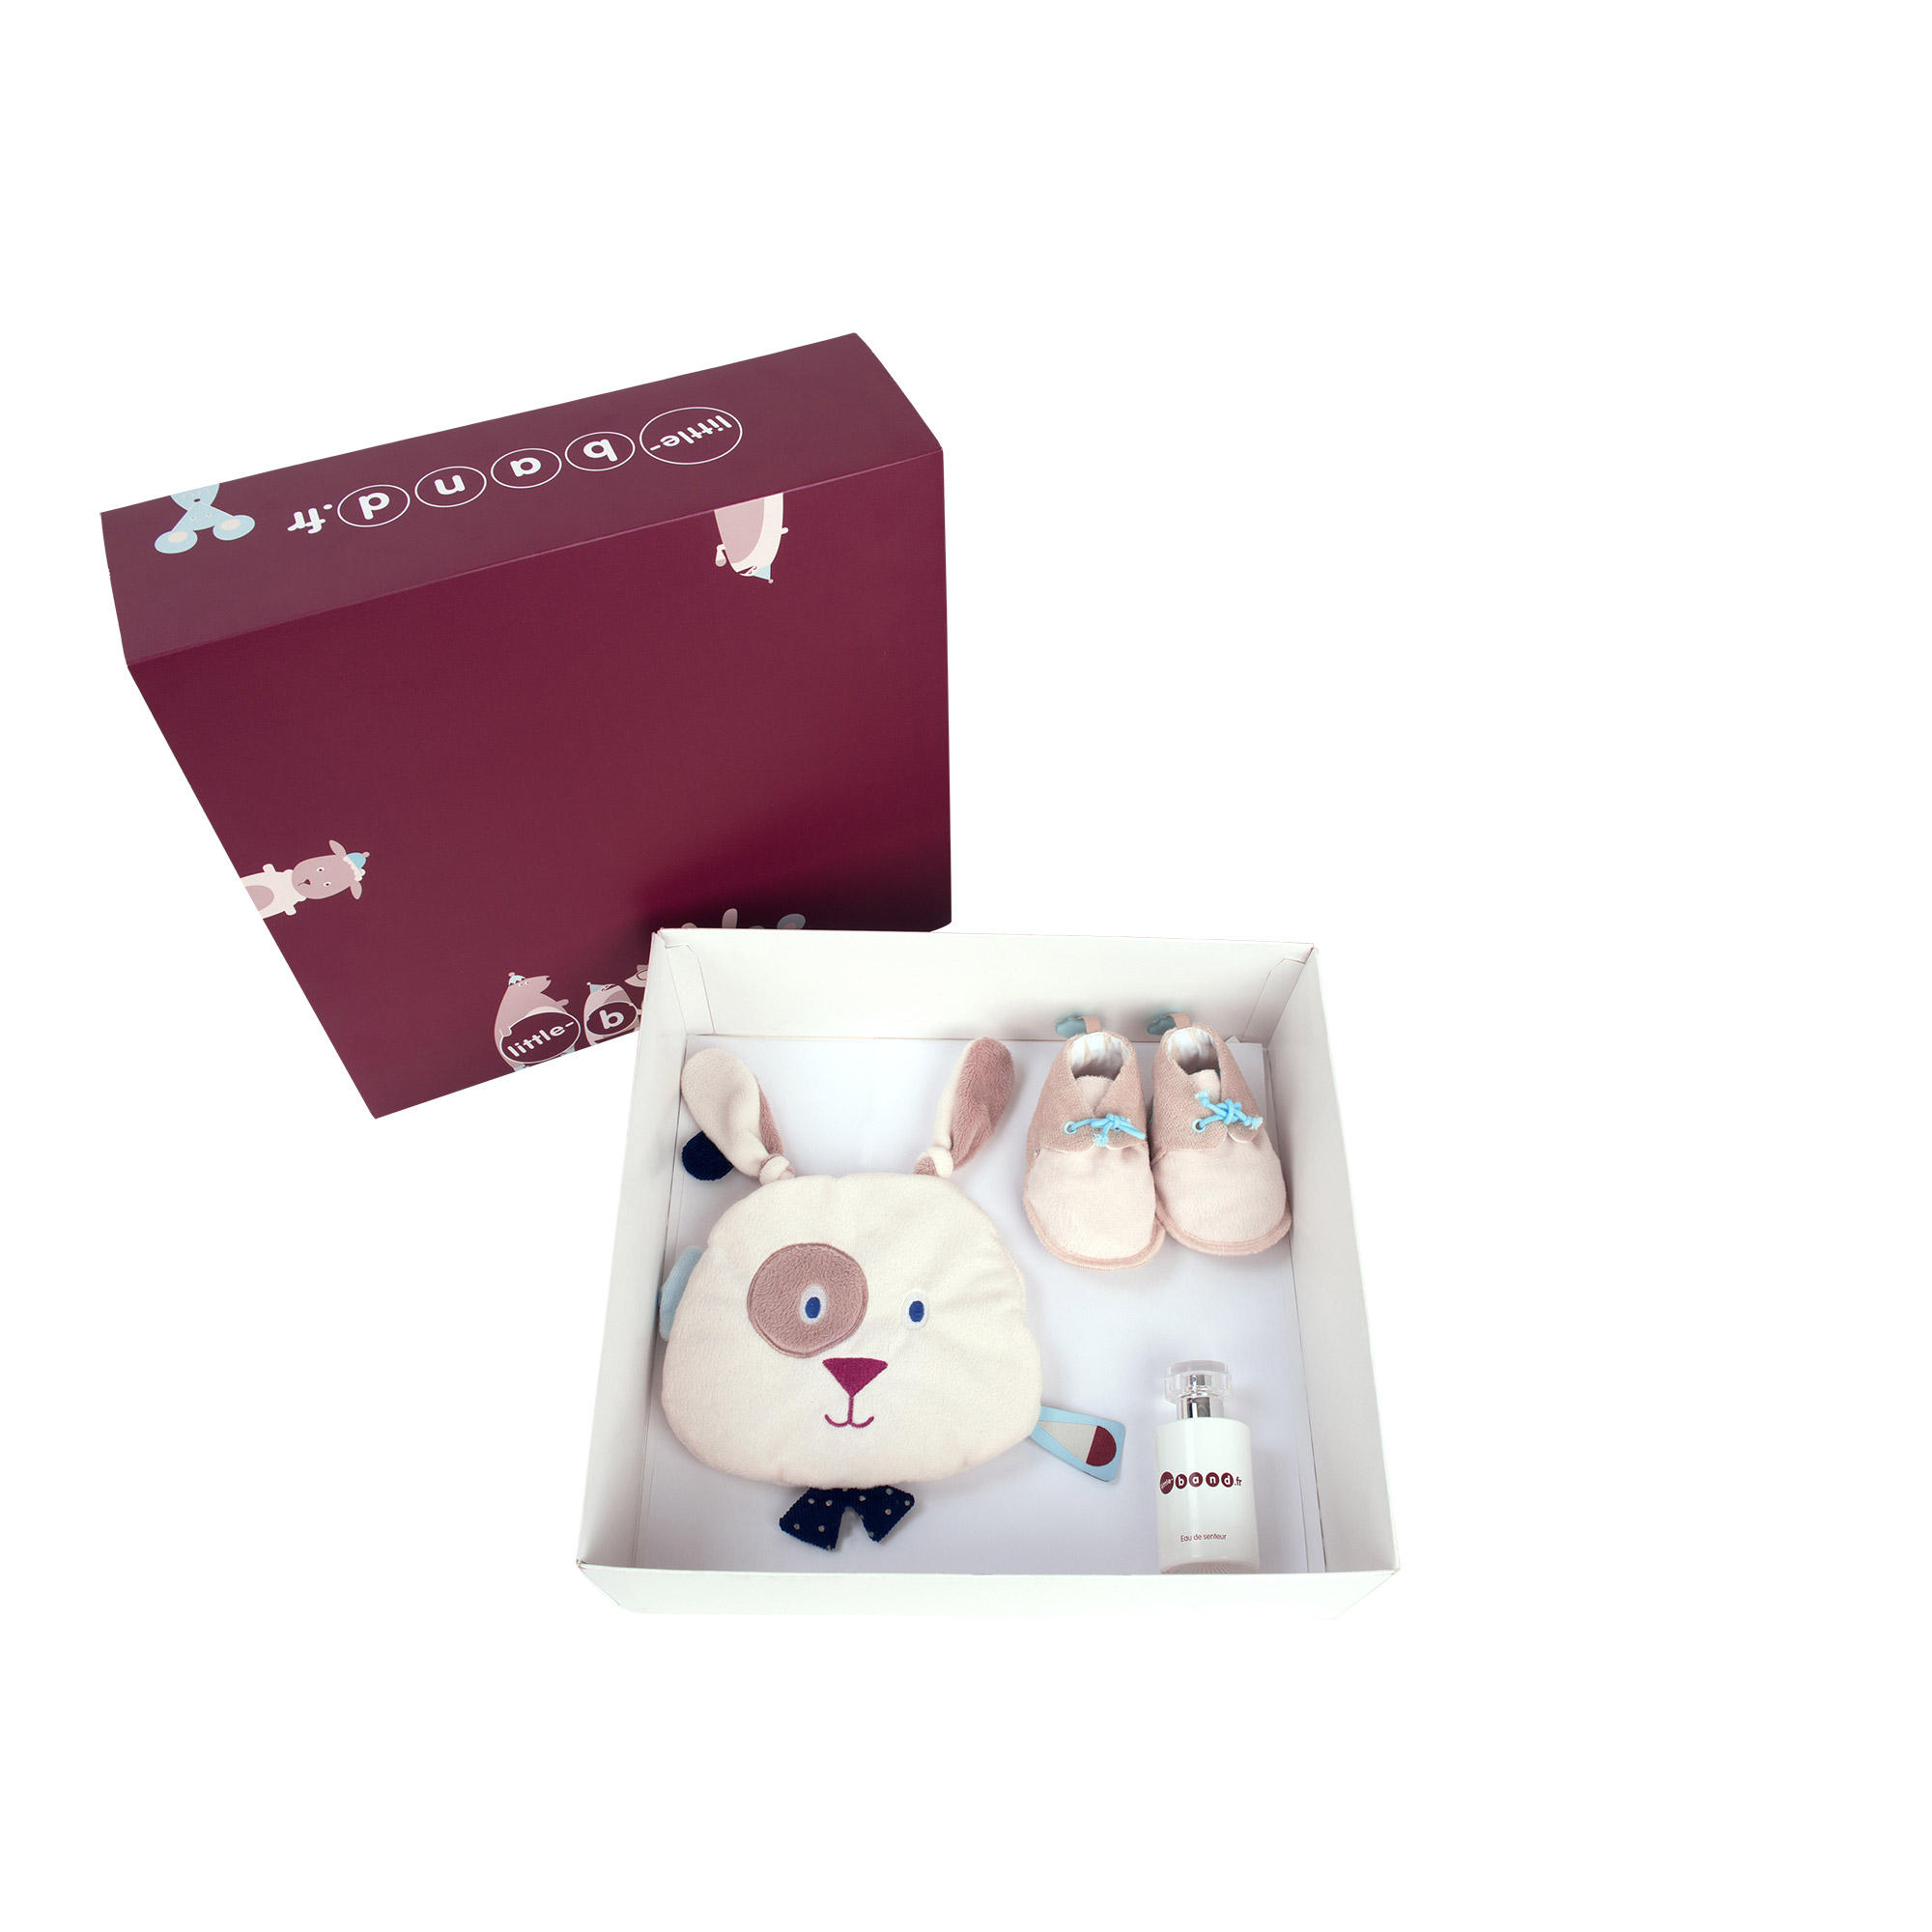 Balloon Company coffret doudou + chausson Beige  de Little Band